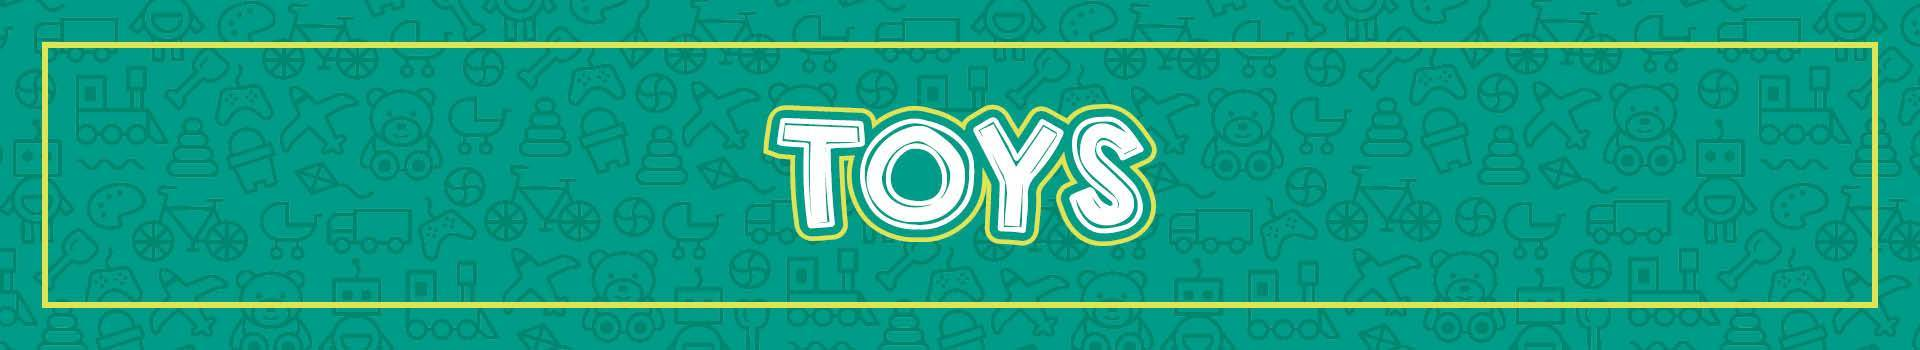 Toys, Fun & Gaming Trends